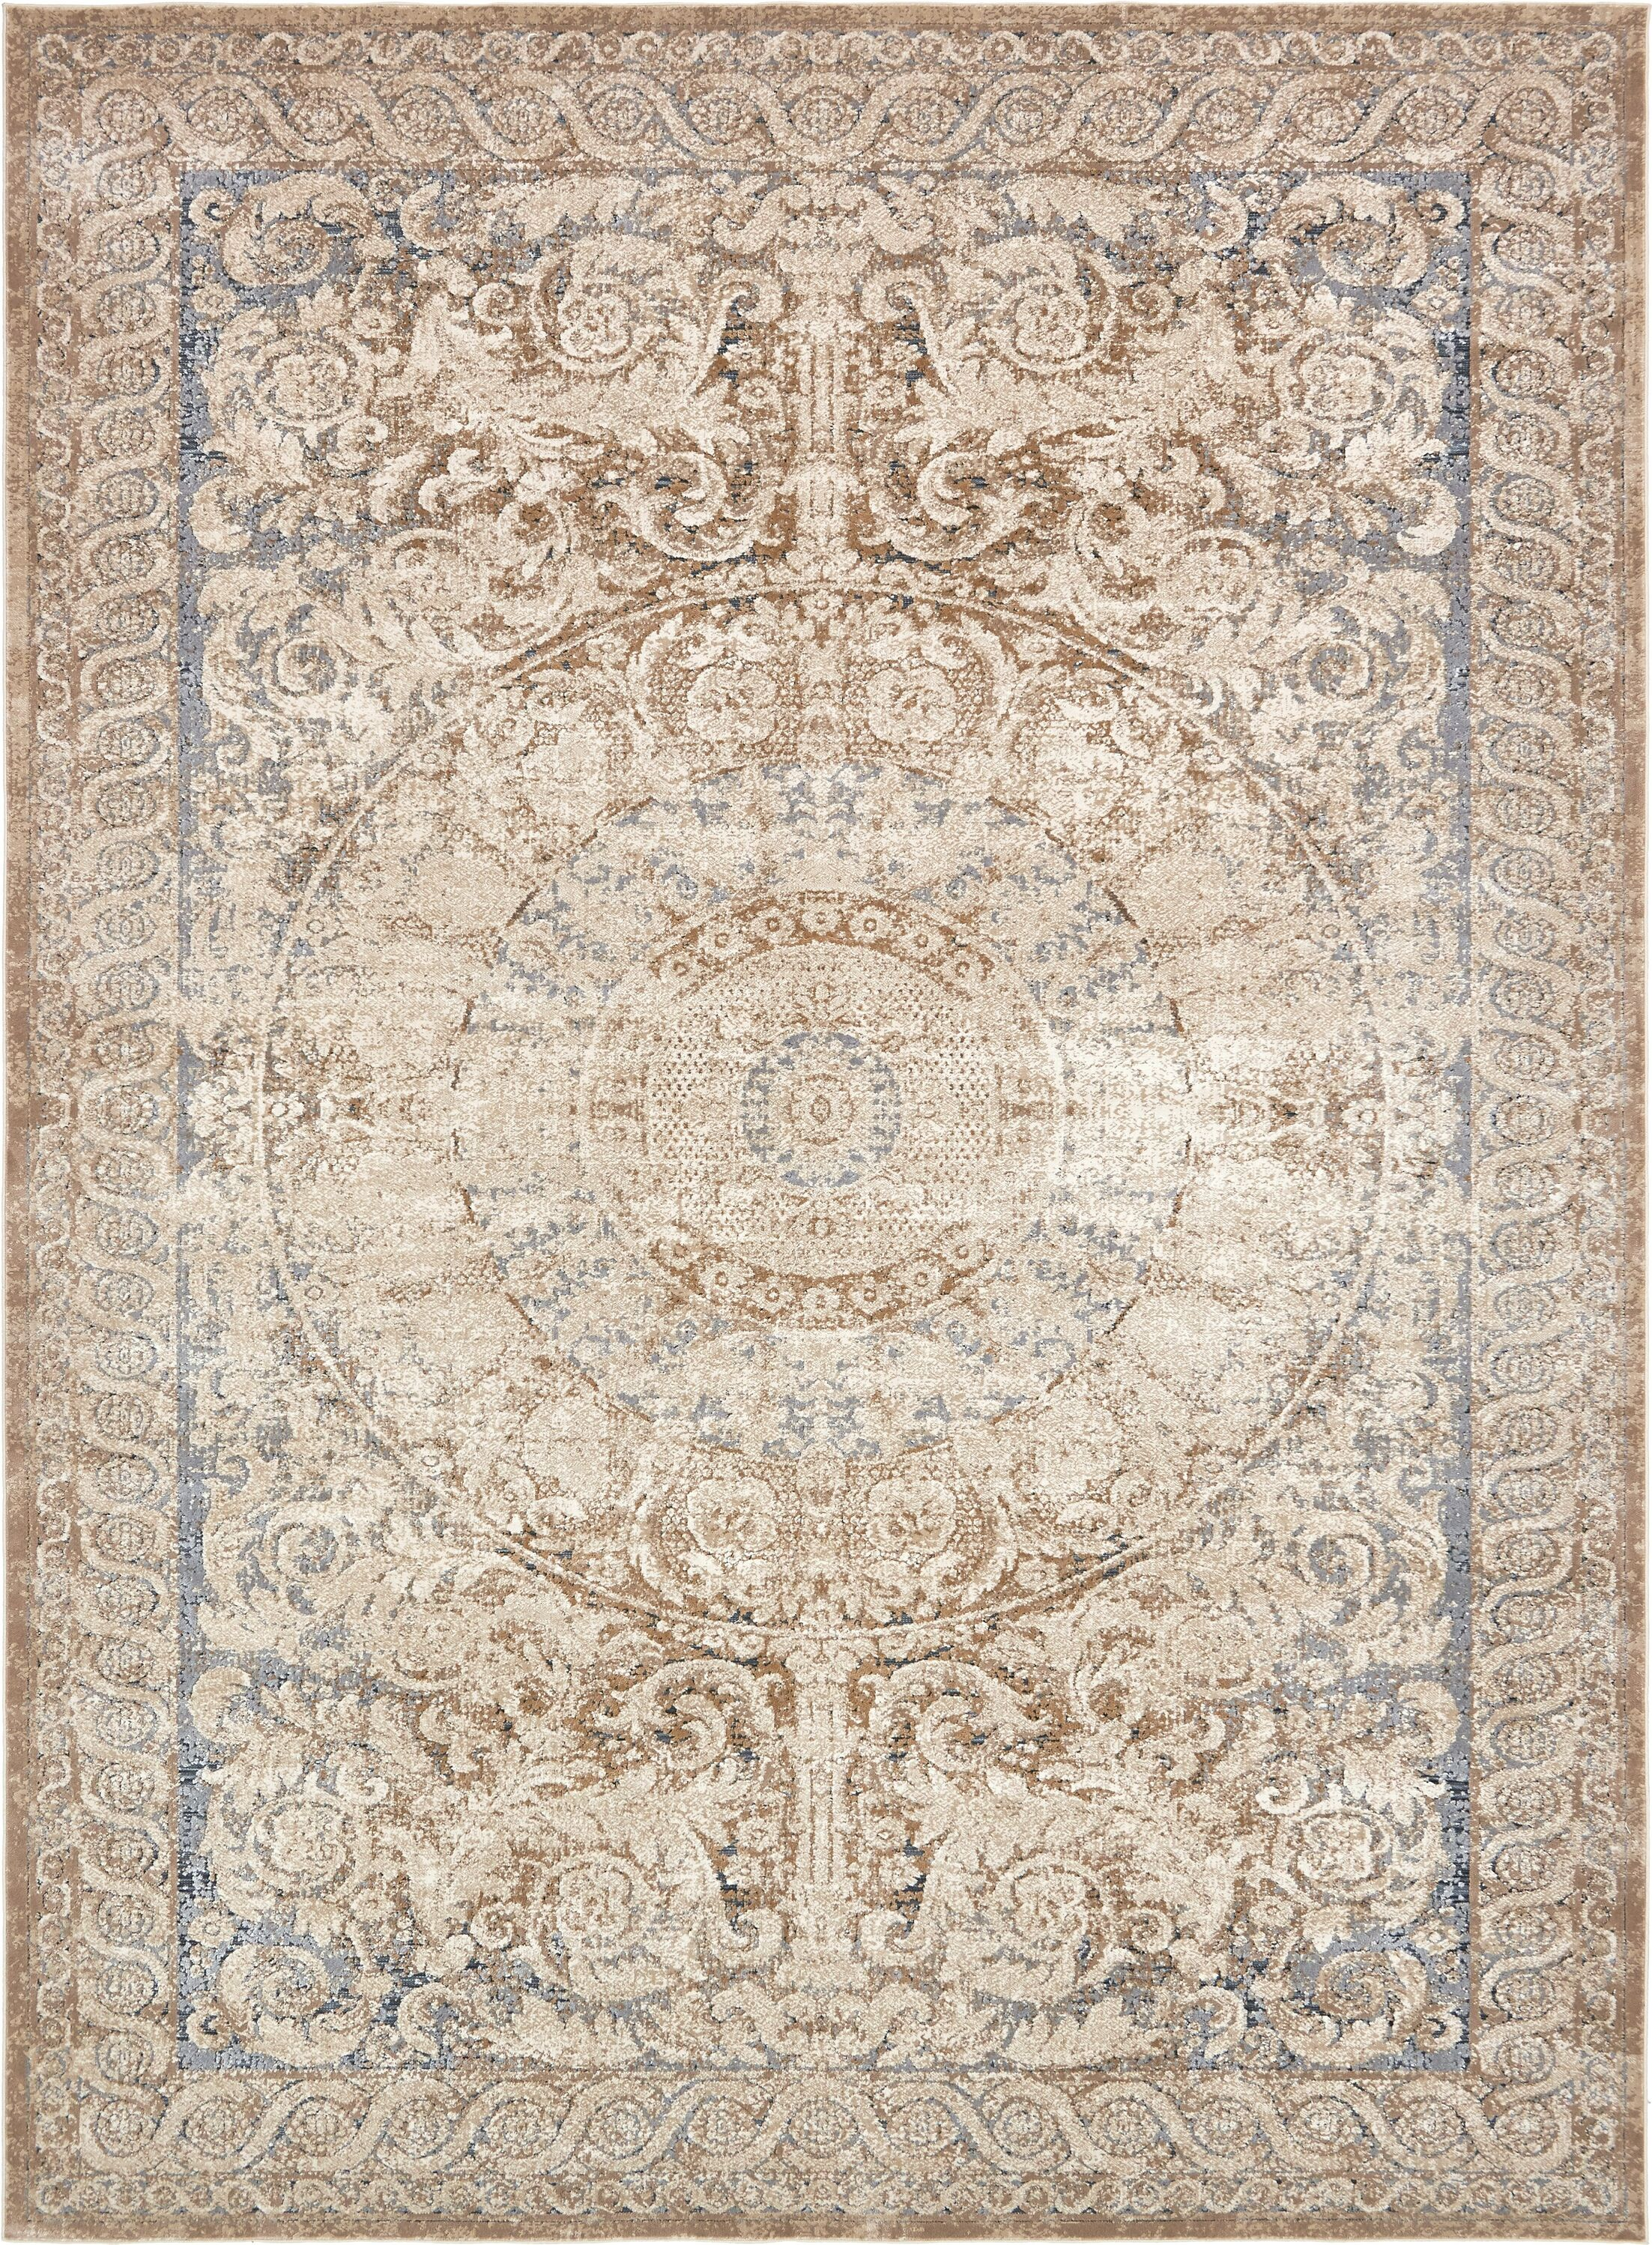 Abbeville Beige Area Rug Rug Size: Rectangle 9' x 12'